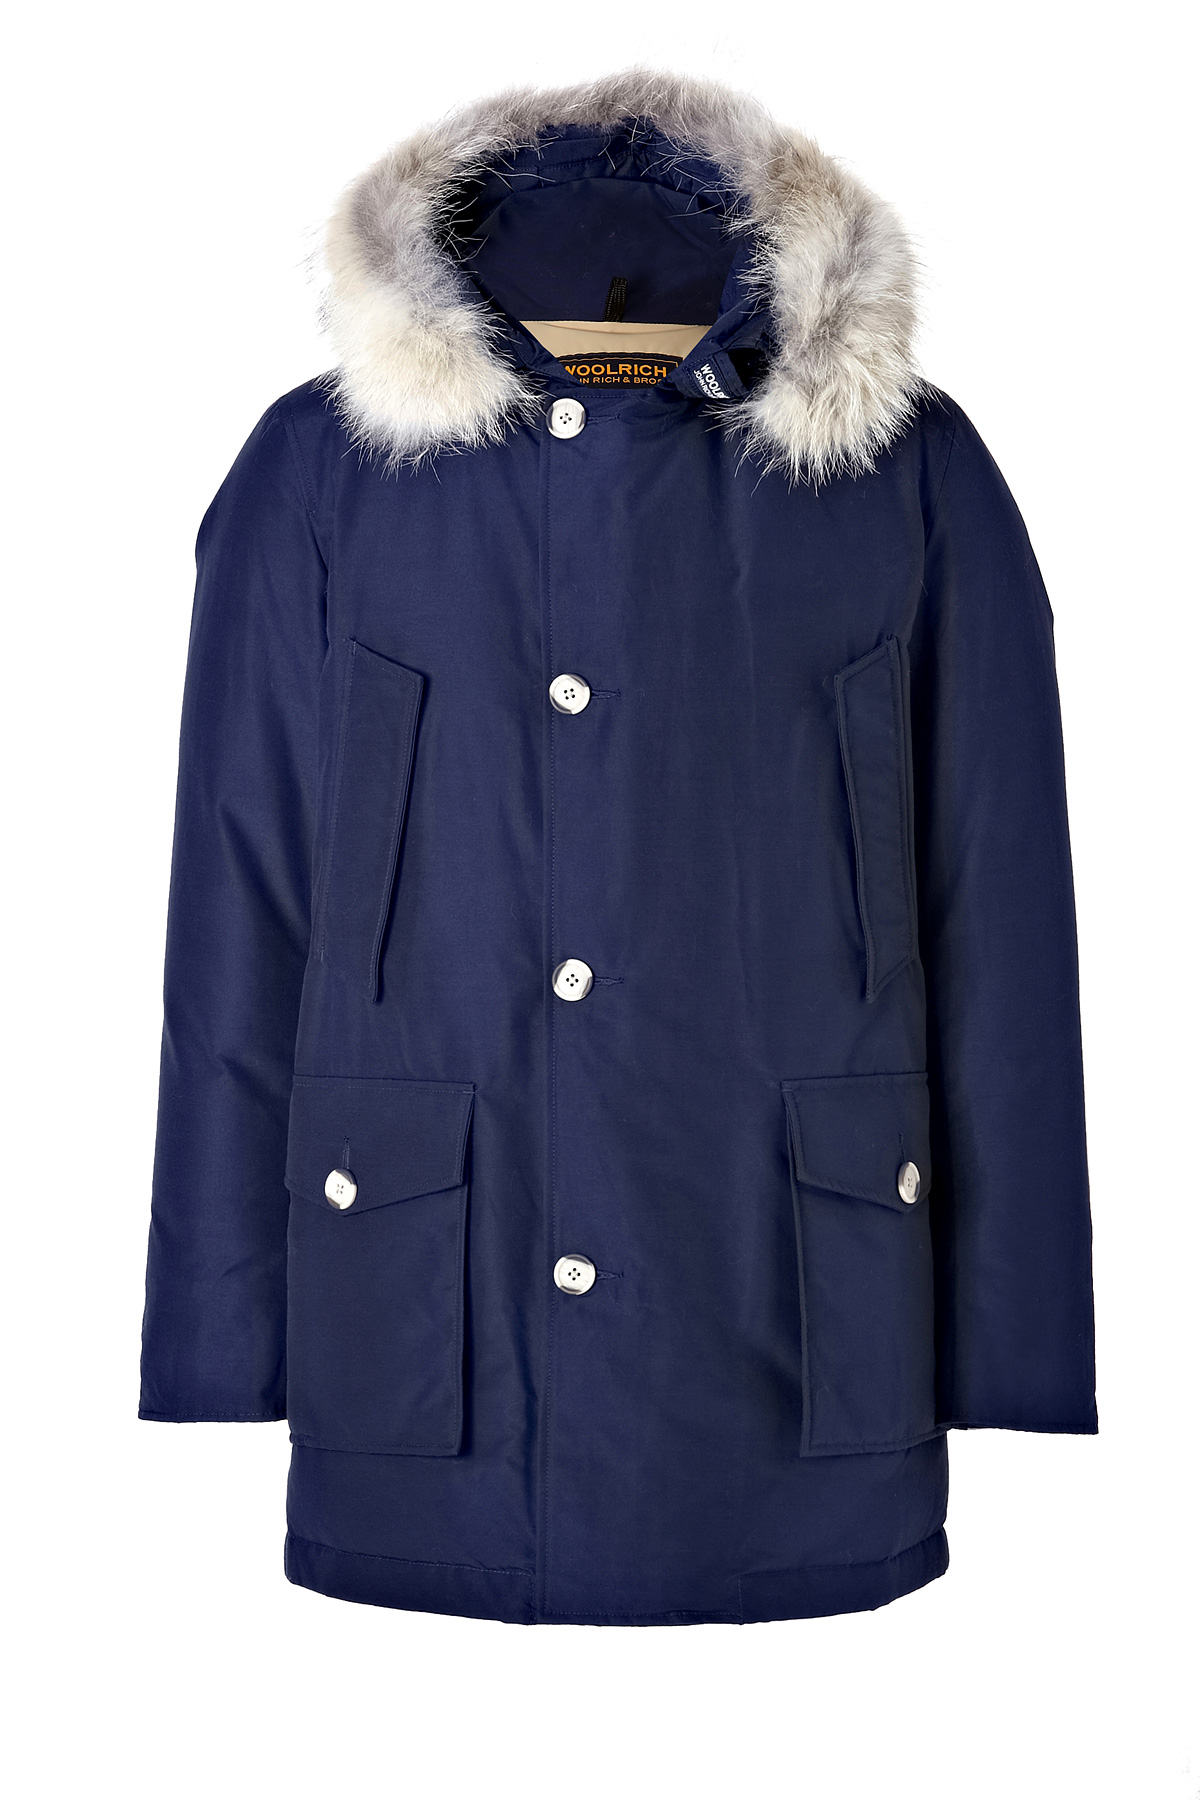 Woolrich Arctic Parka Royal Blue